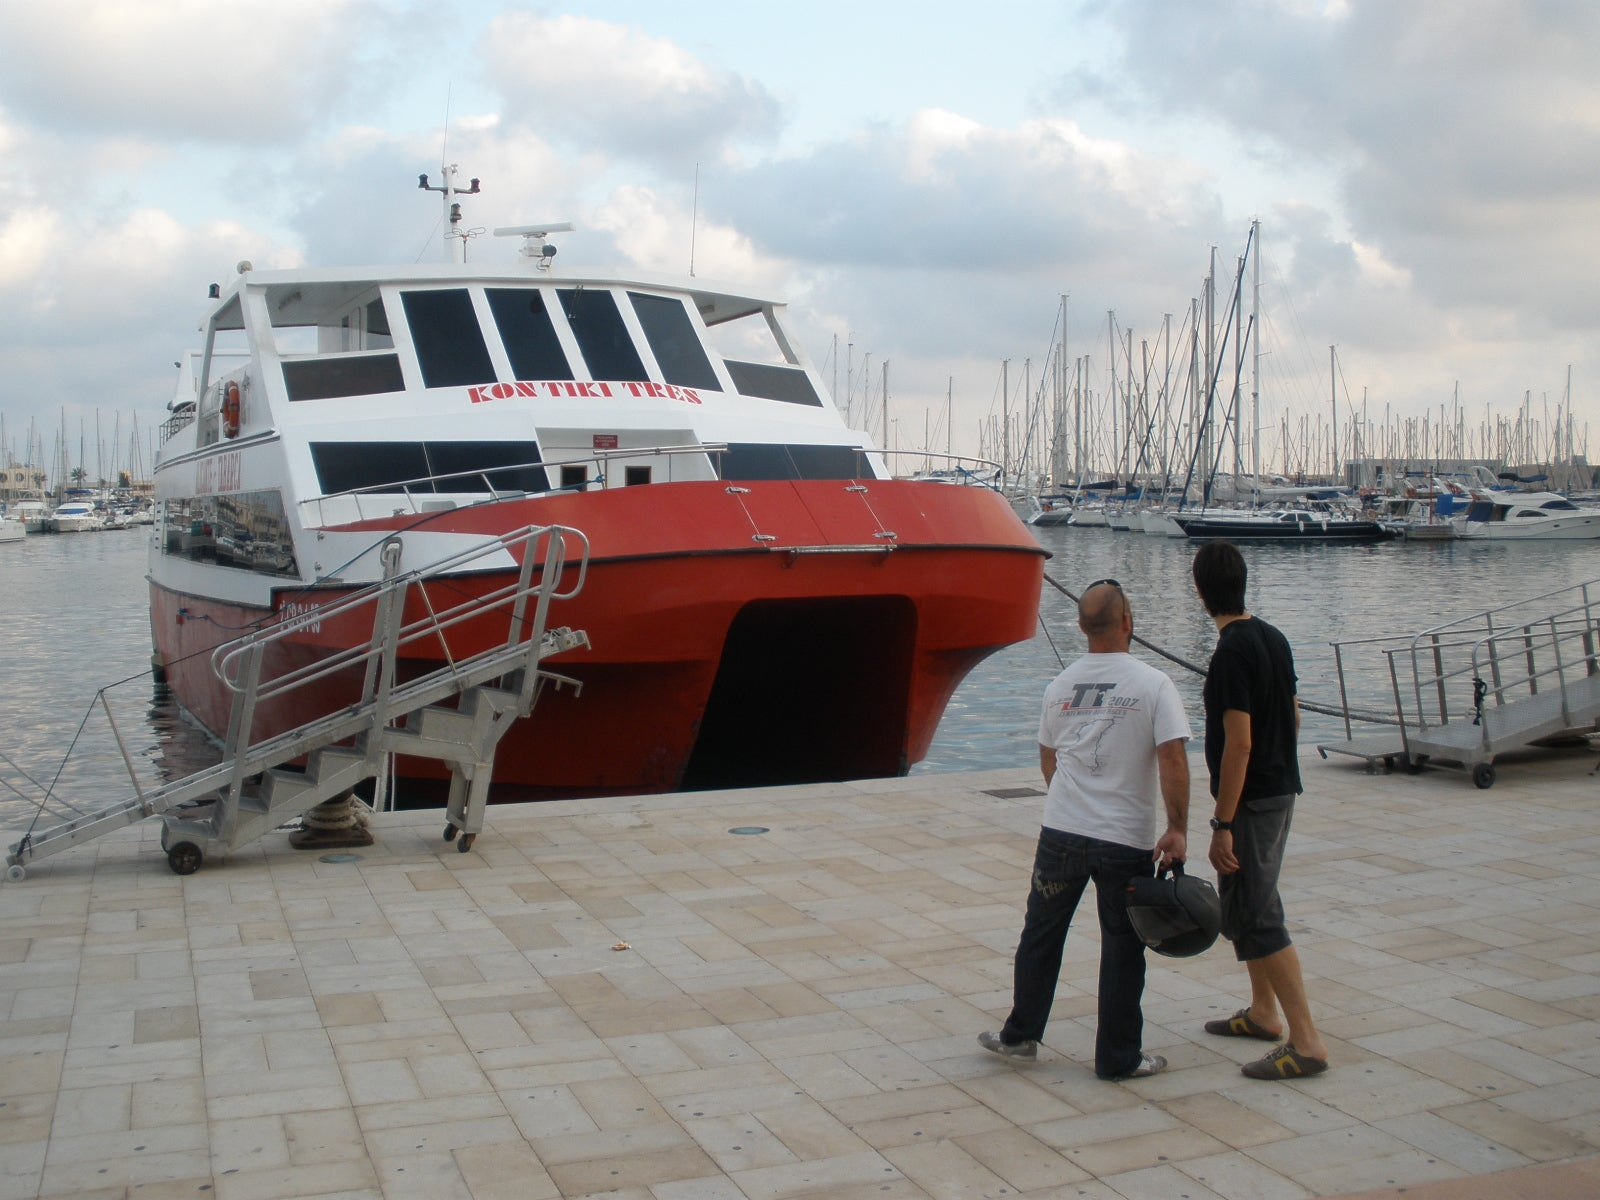 Vehicle in Port of Alicante